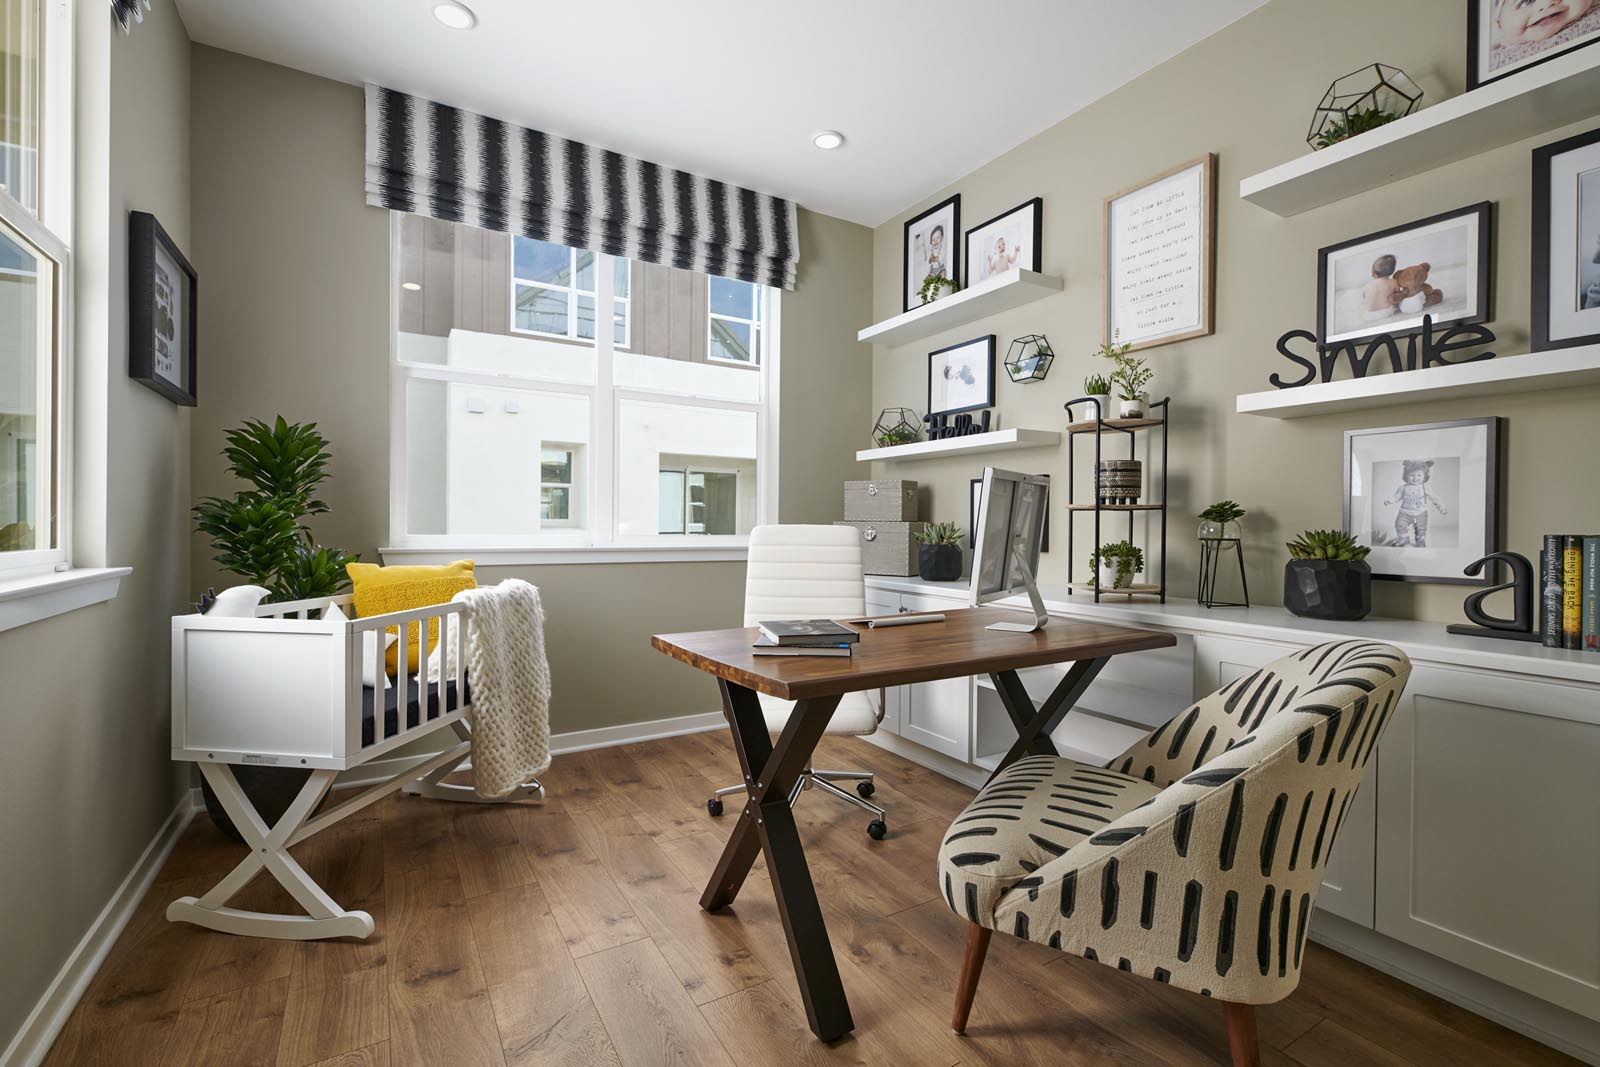 Office   Residence 2   Enliven   New Homes in Rancho Cucamonga, CA   Van Daele Homes